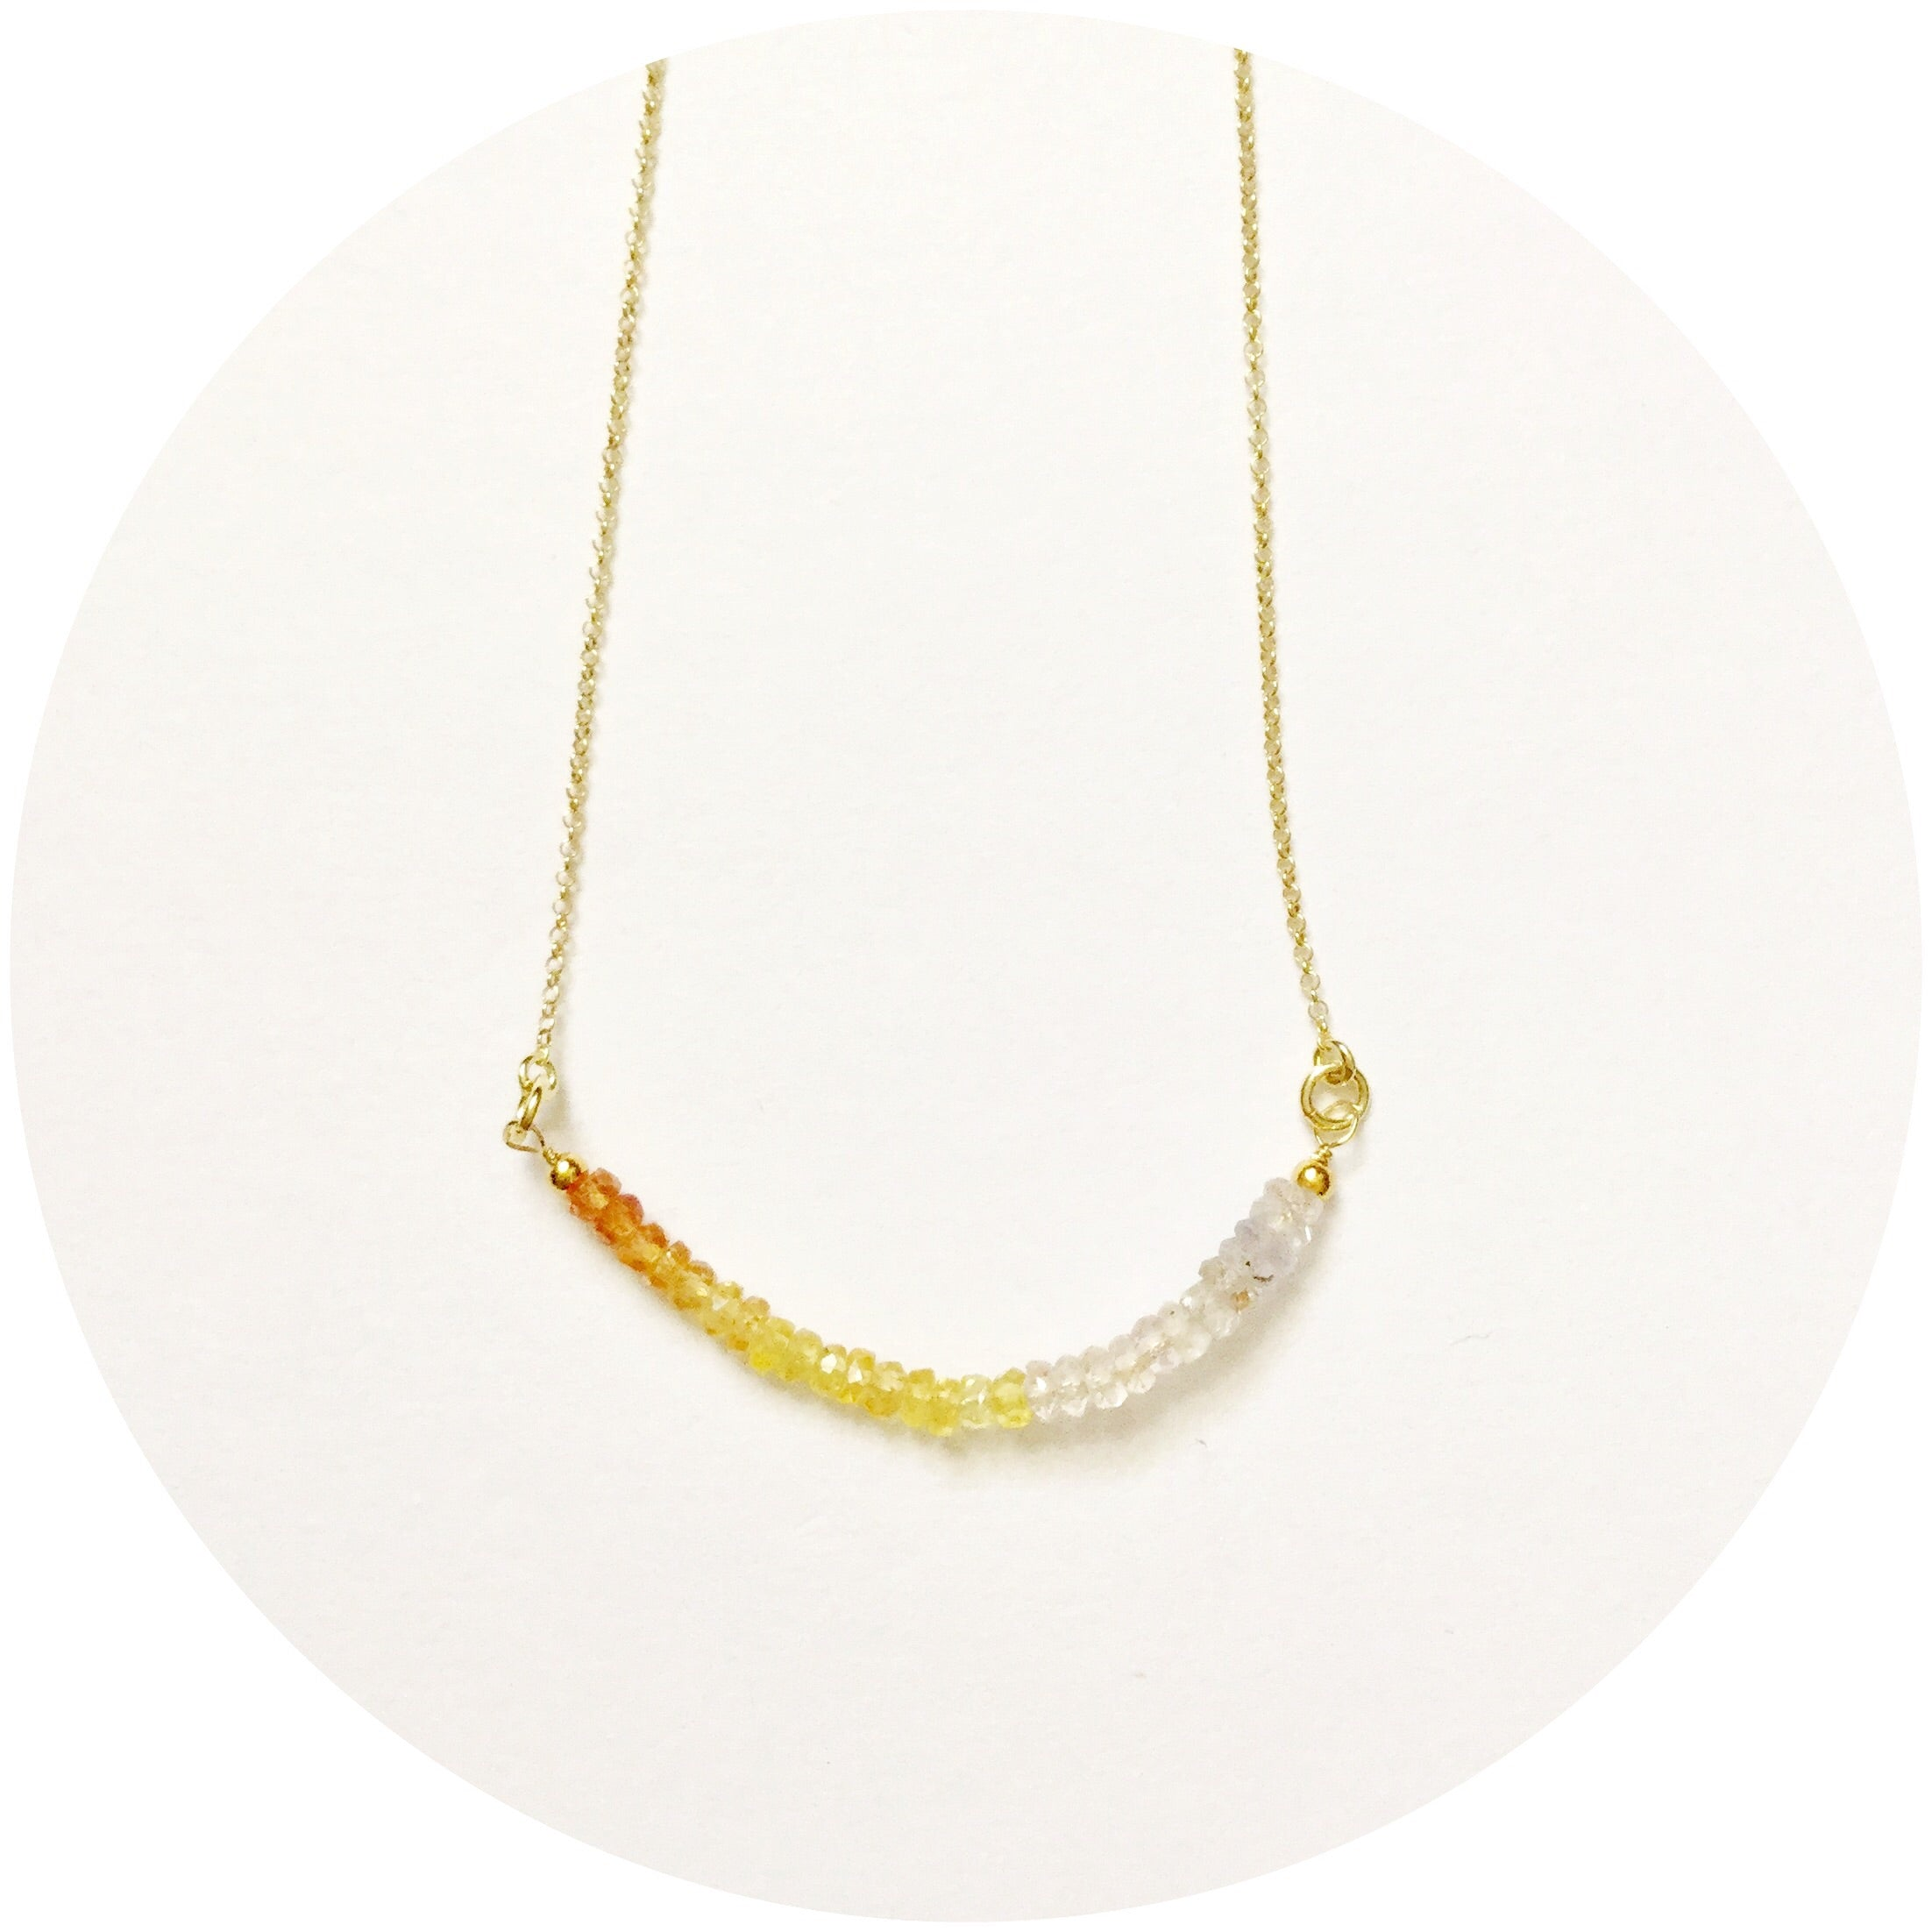 Rock Candy Citrine Necklace